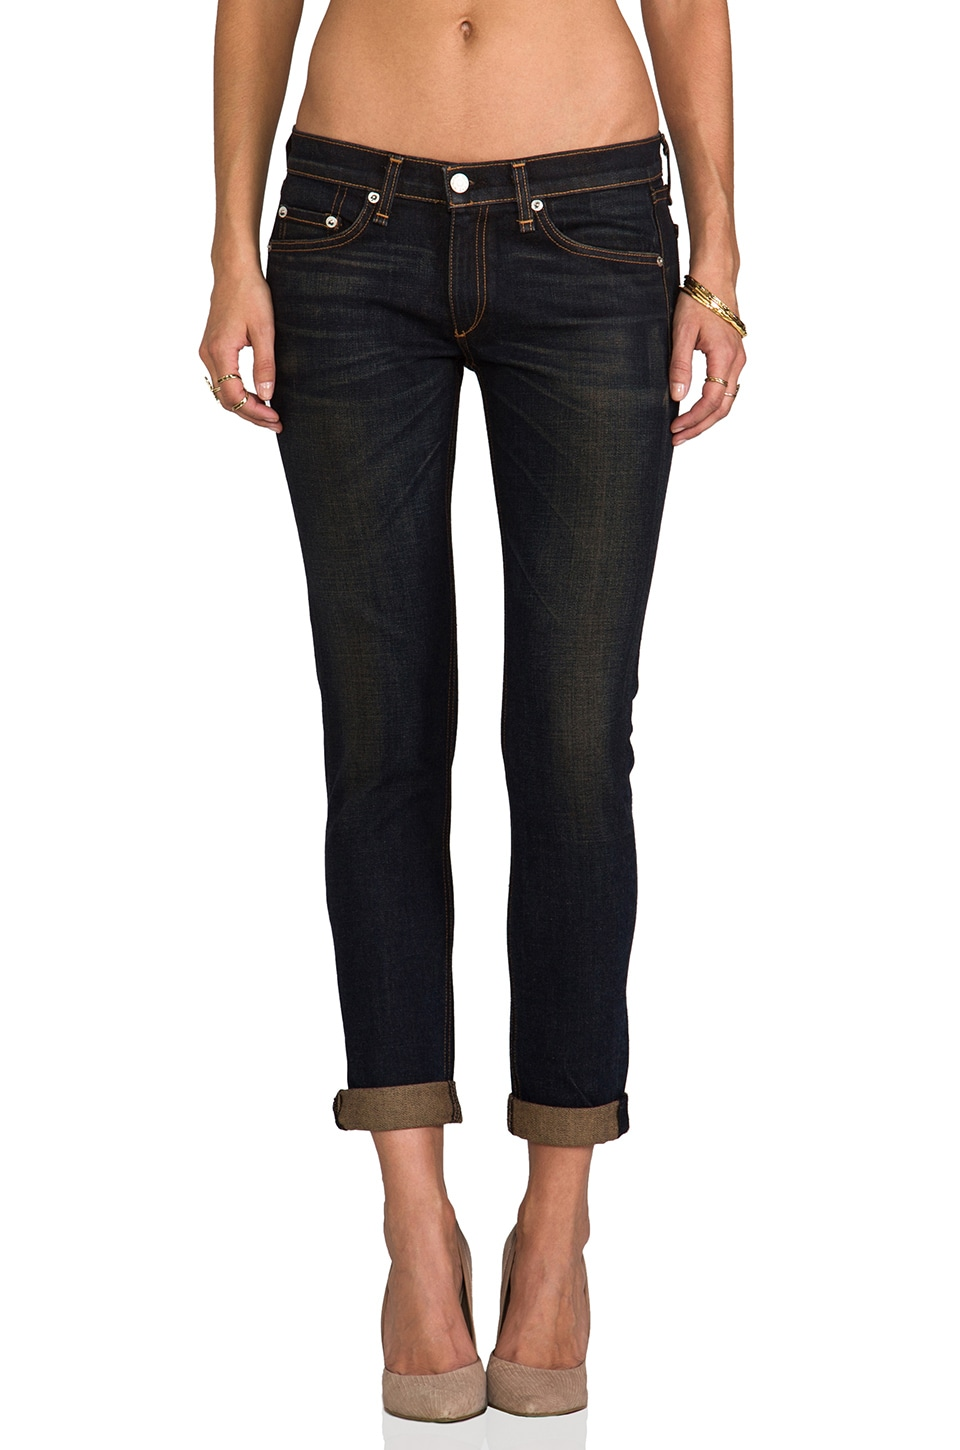 rag & bone/JEAN The Dre Boyfriend Skinny in Charing